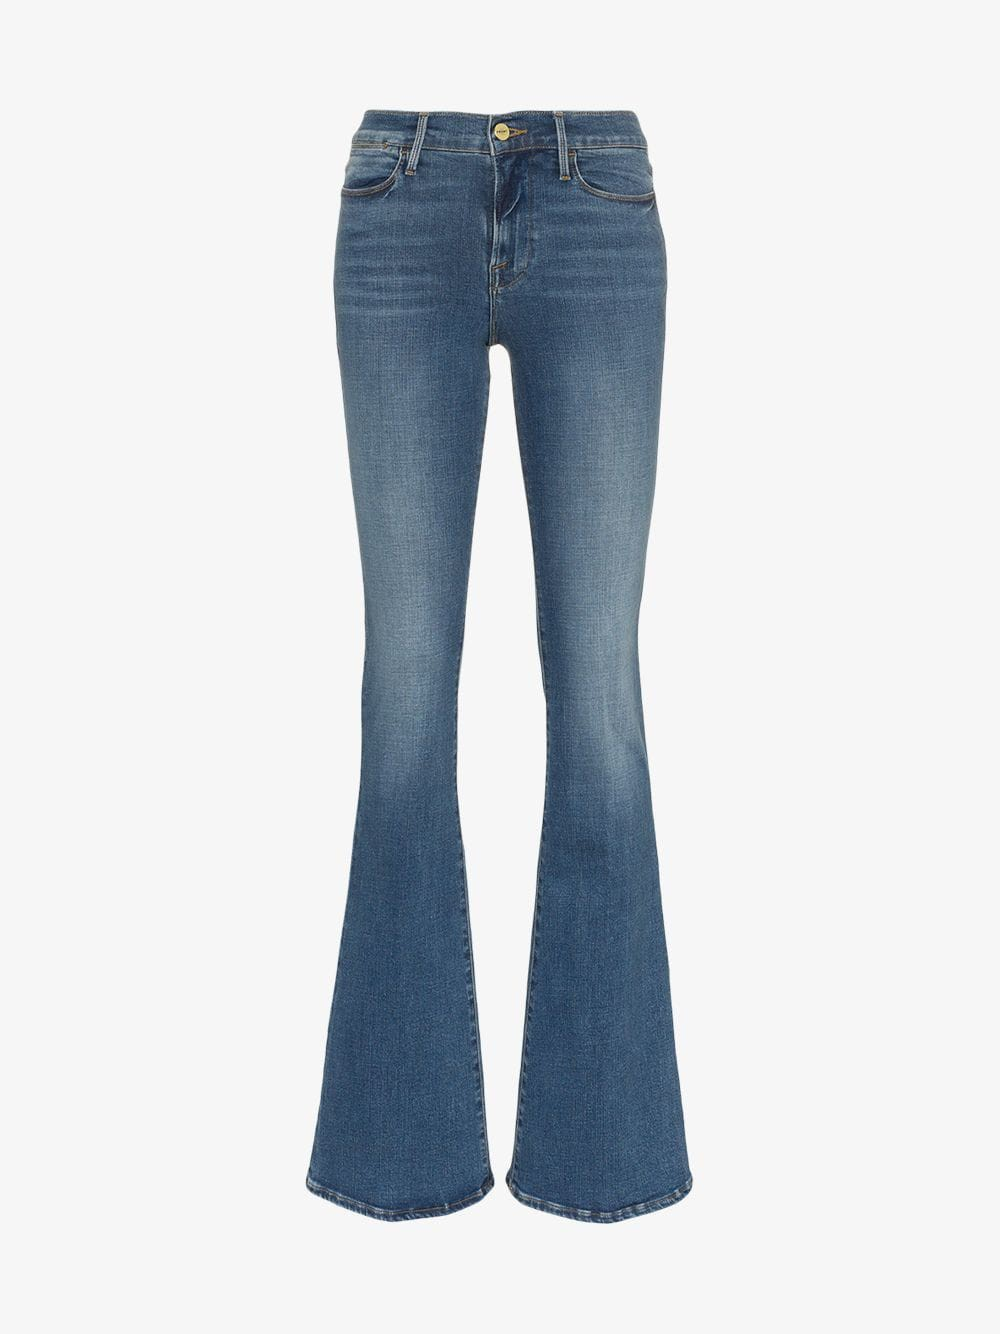 Frame Denim FRAME Le High Flare Jeans in blue